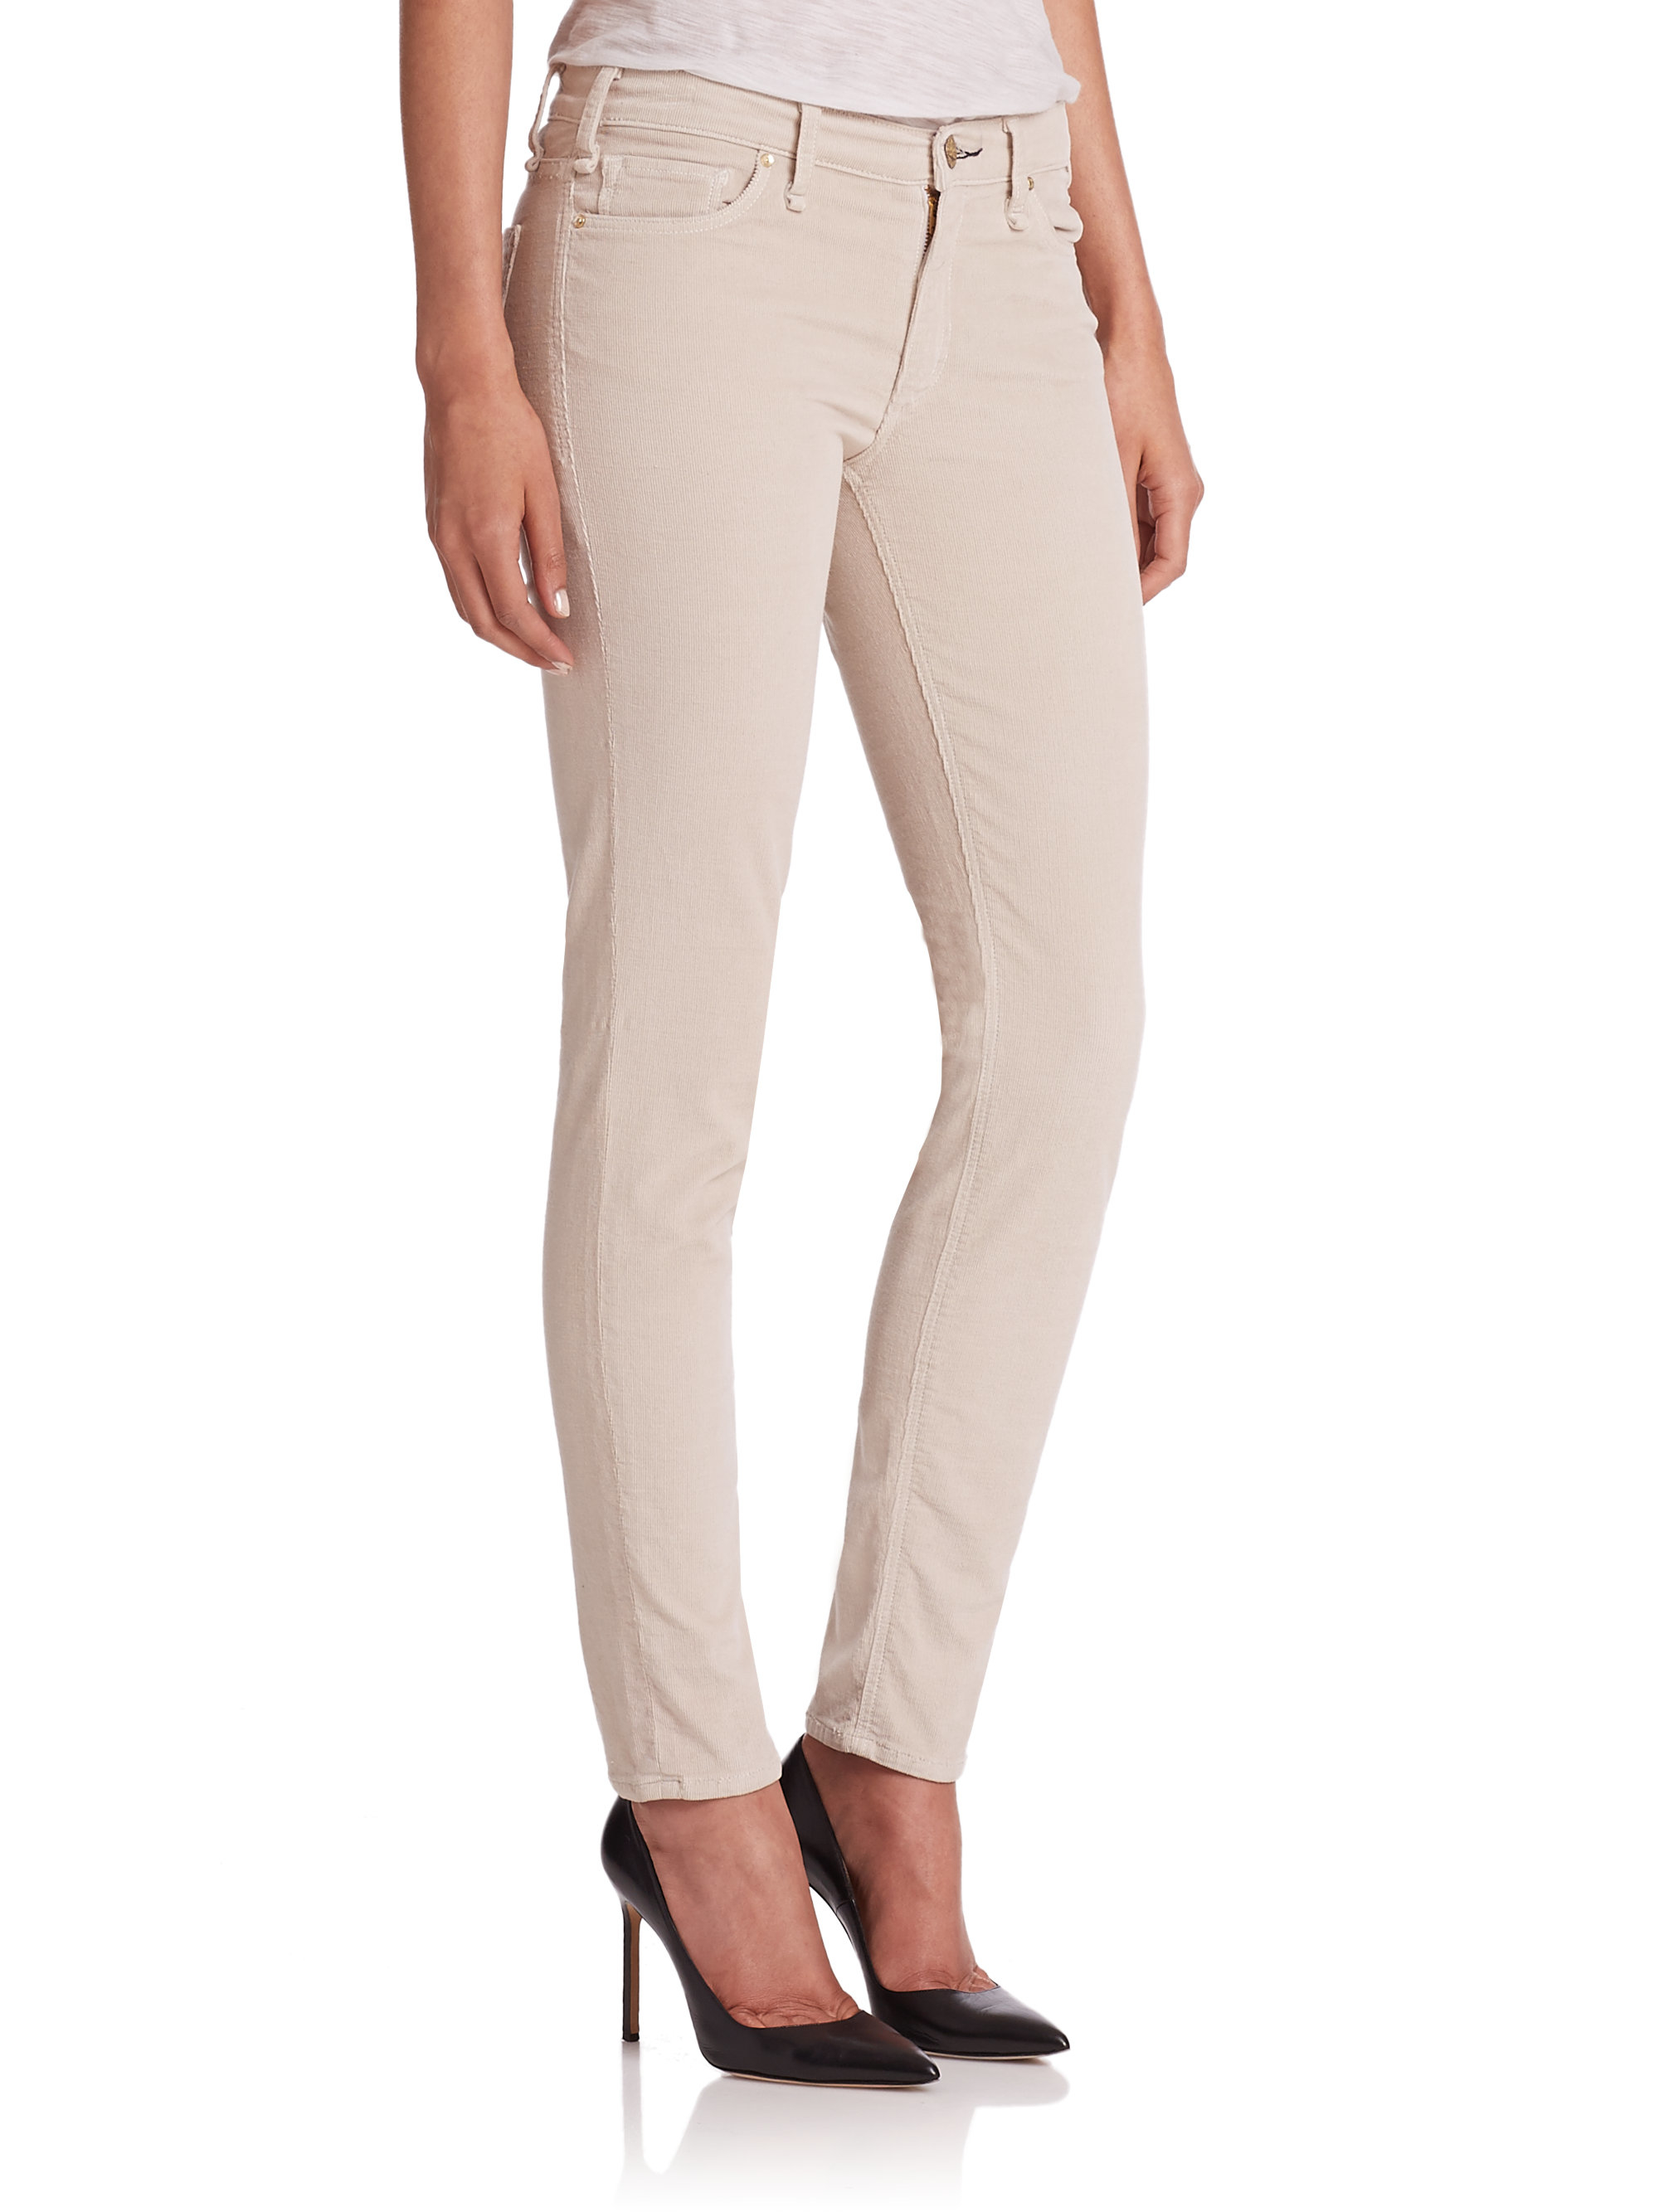 womens white corduroy pants photo - 2